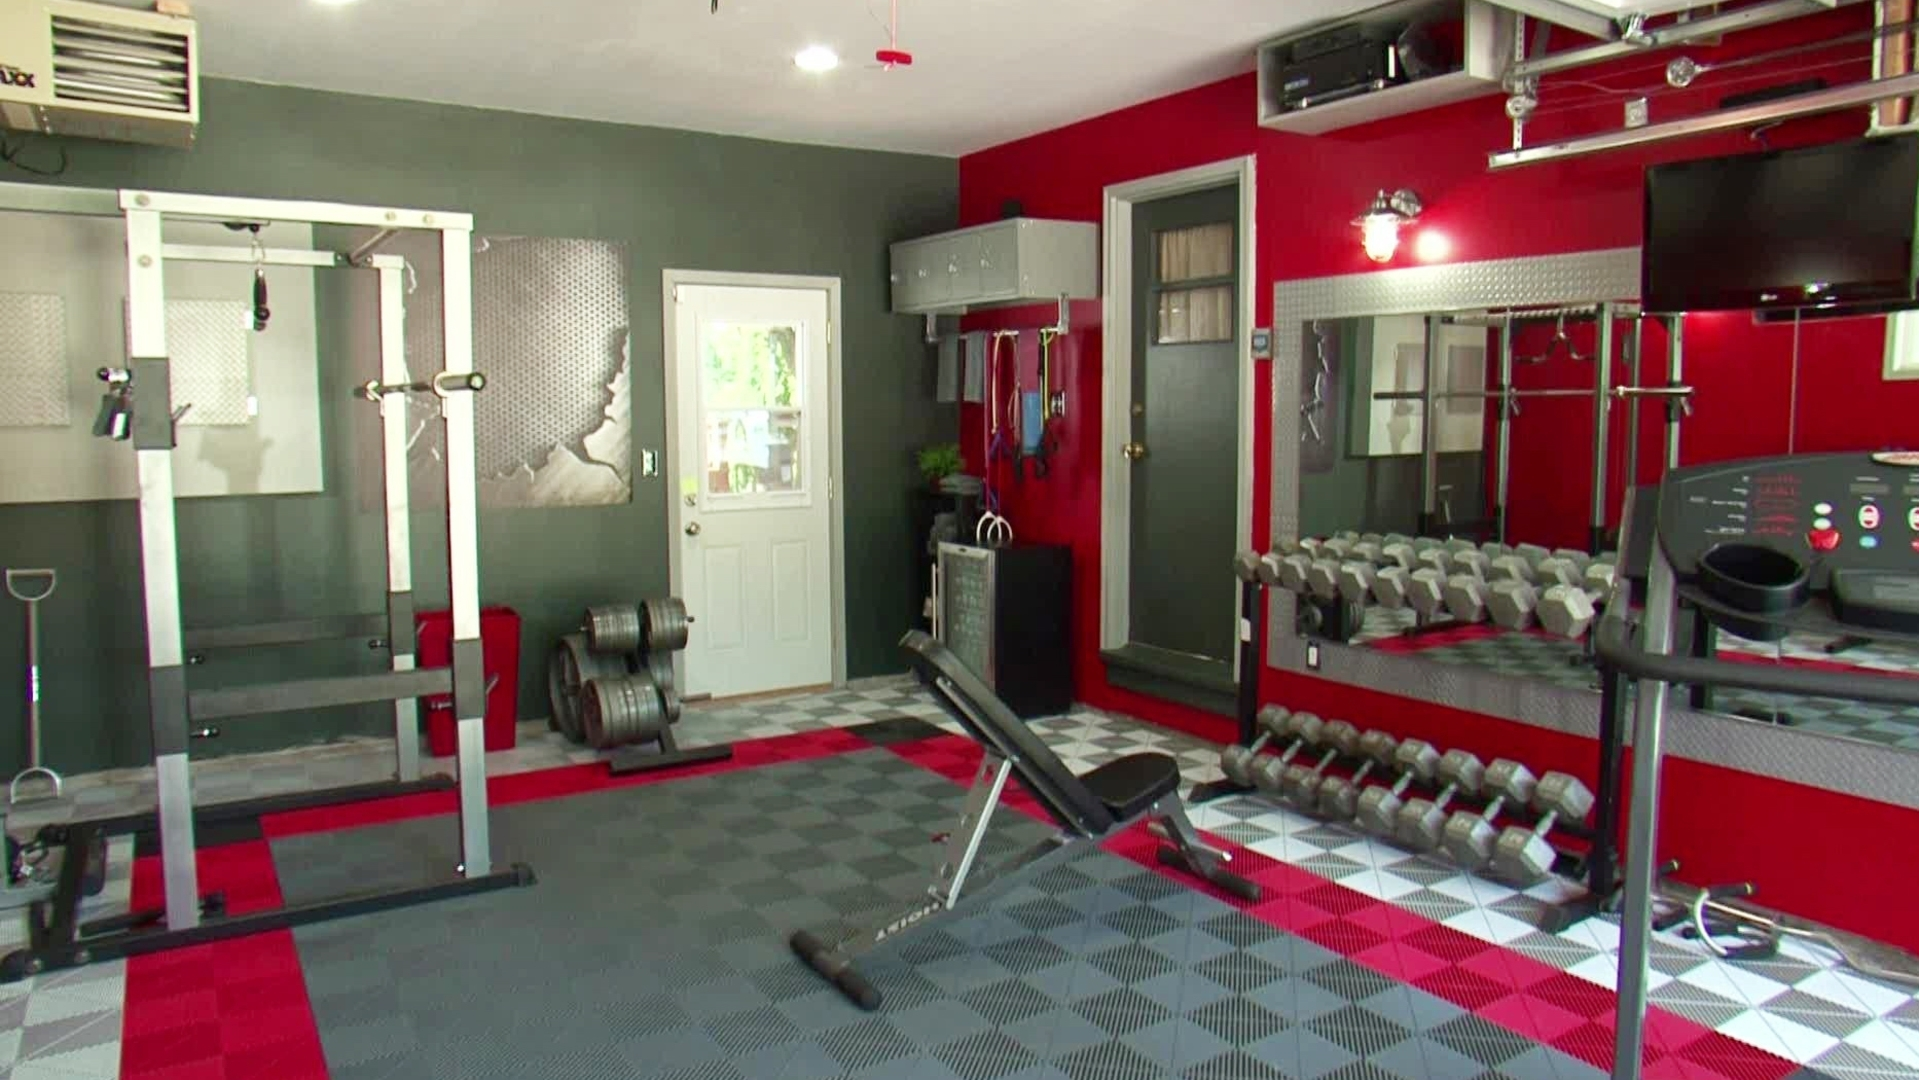 Garage Gym Ideas On A Budget Madison Art Center Design